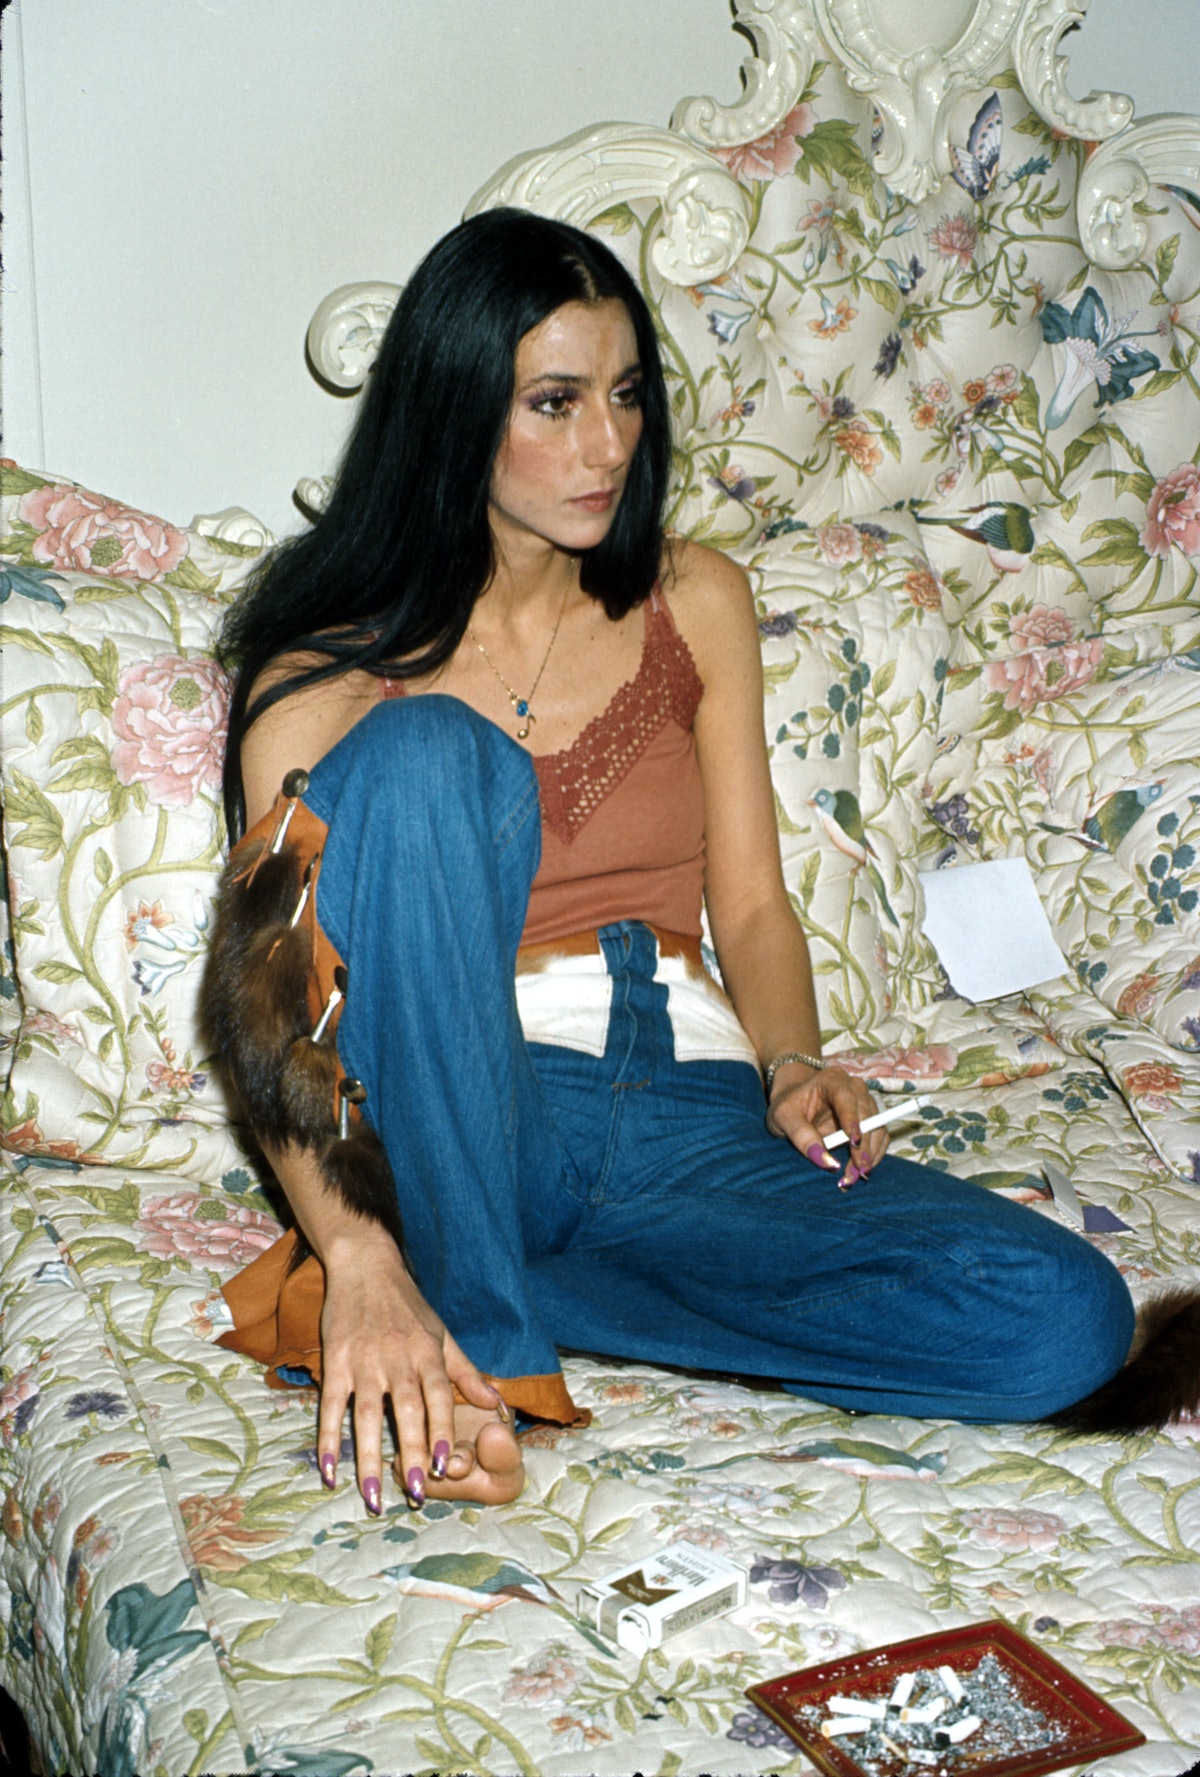 Cher wears wide leg jeans with a spaghetti-strap camisole with lace trip in the 1970s.